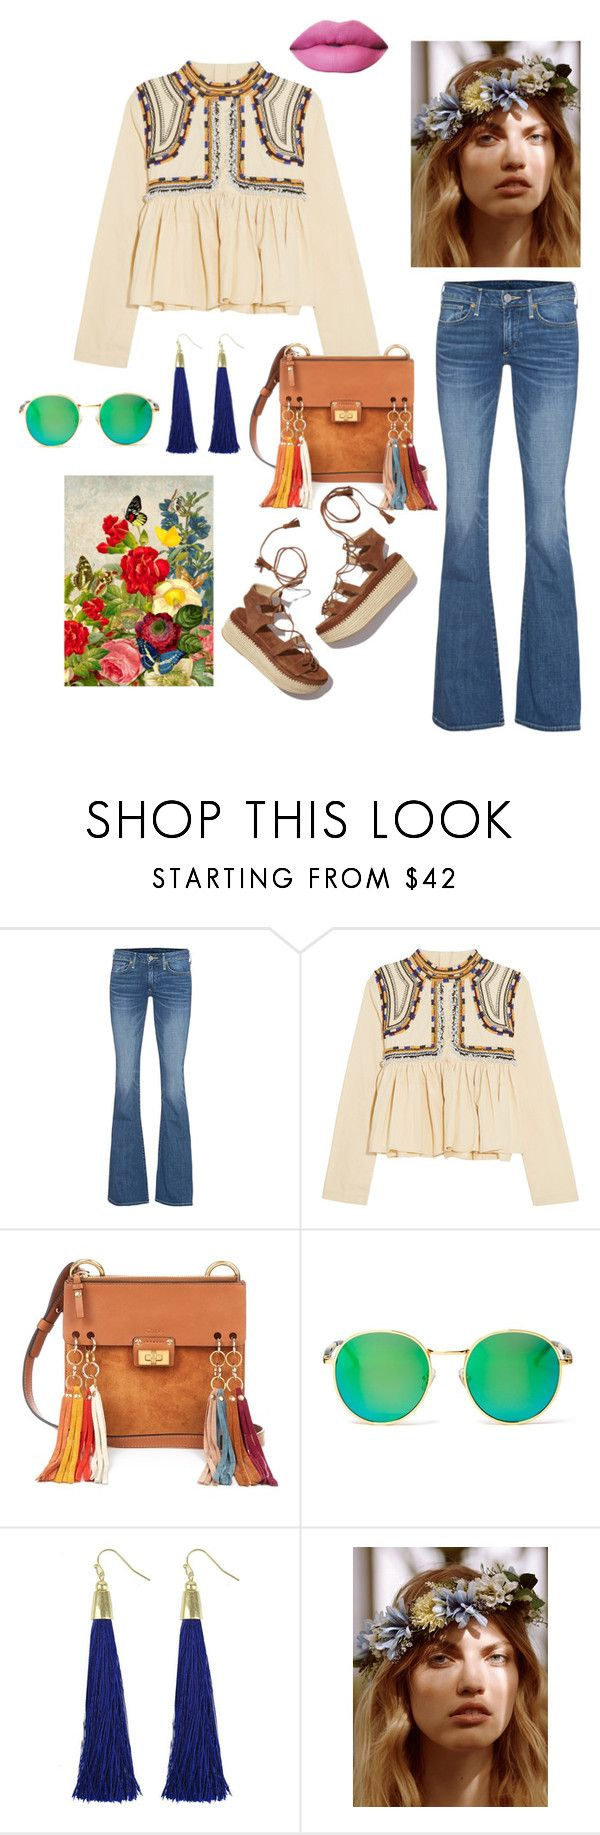 """BOHO #1"" by evitaom on Polyvore featuring True Religion, Isabel Marant, Chloé, Stuart Weitzman, Wildfox and Free People"